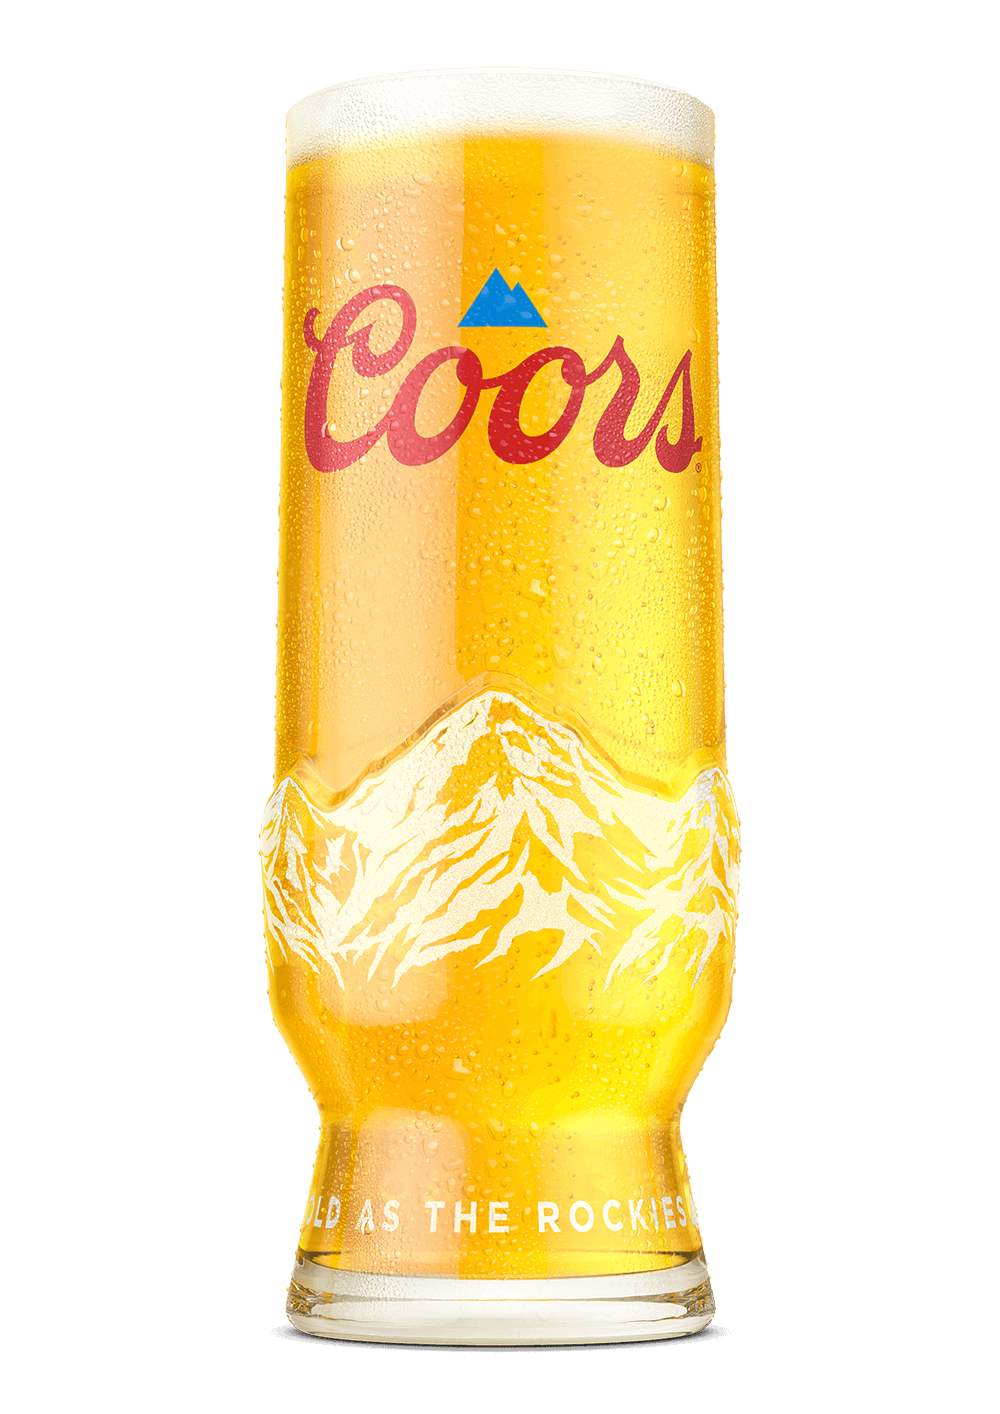 Coors glass